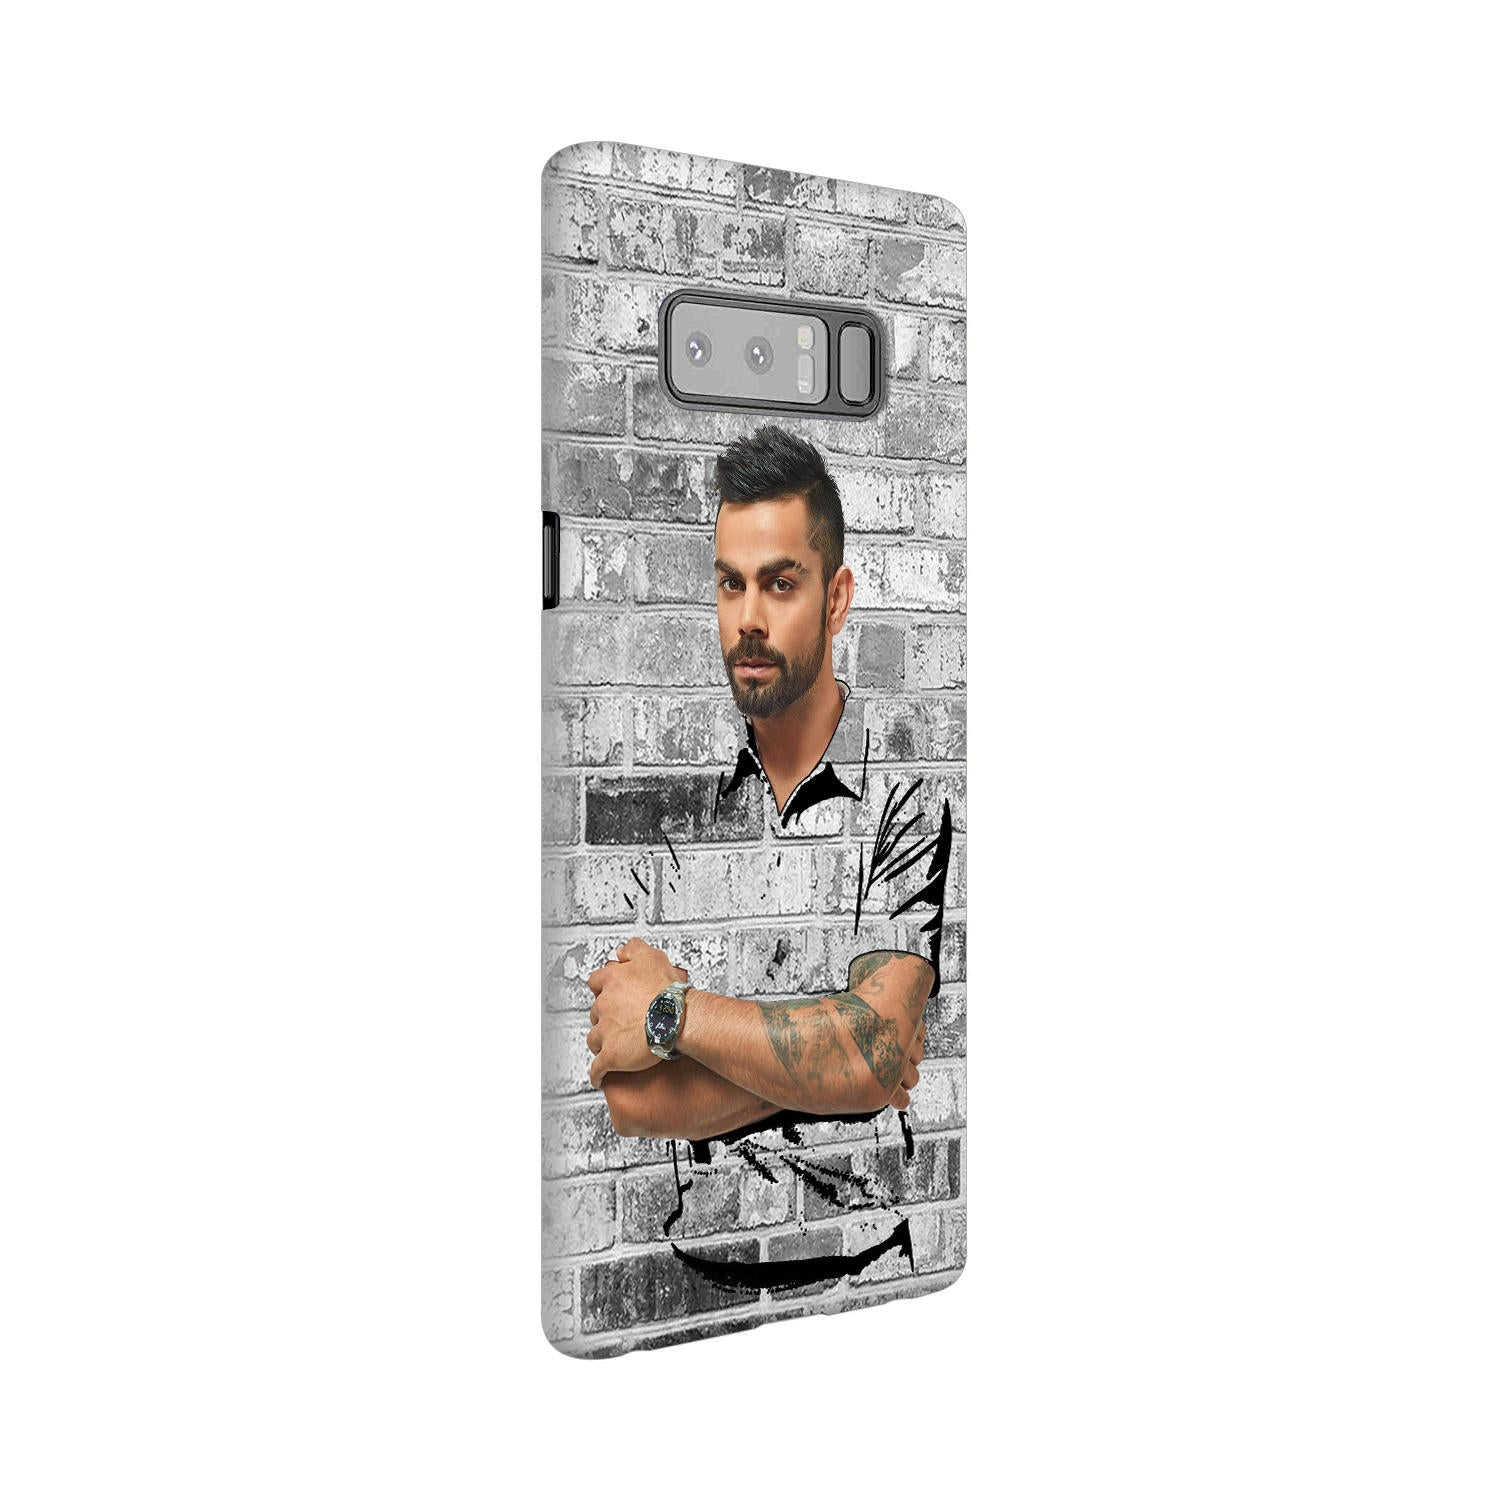 The Wall Of Kohli Samsung Galaxy Note 8 Mobile Cover Case - MADANYU